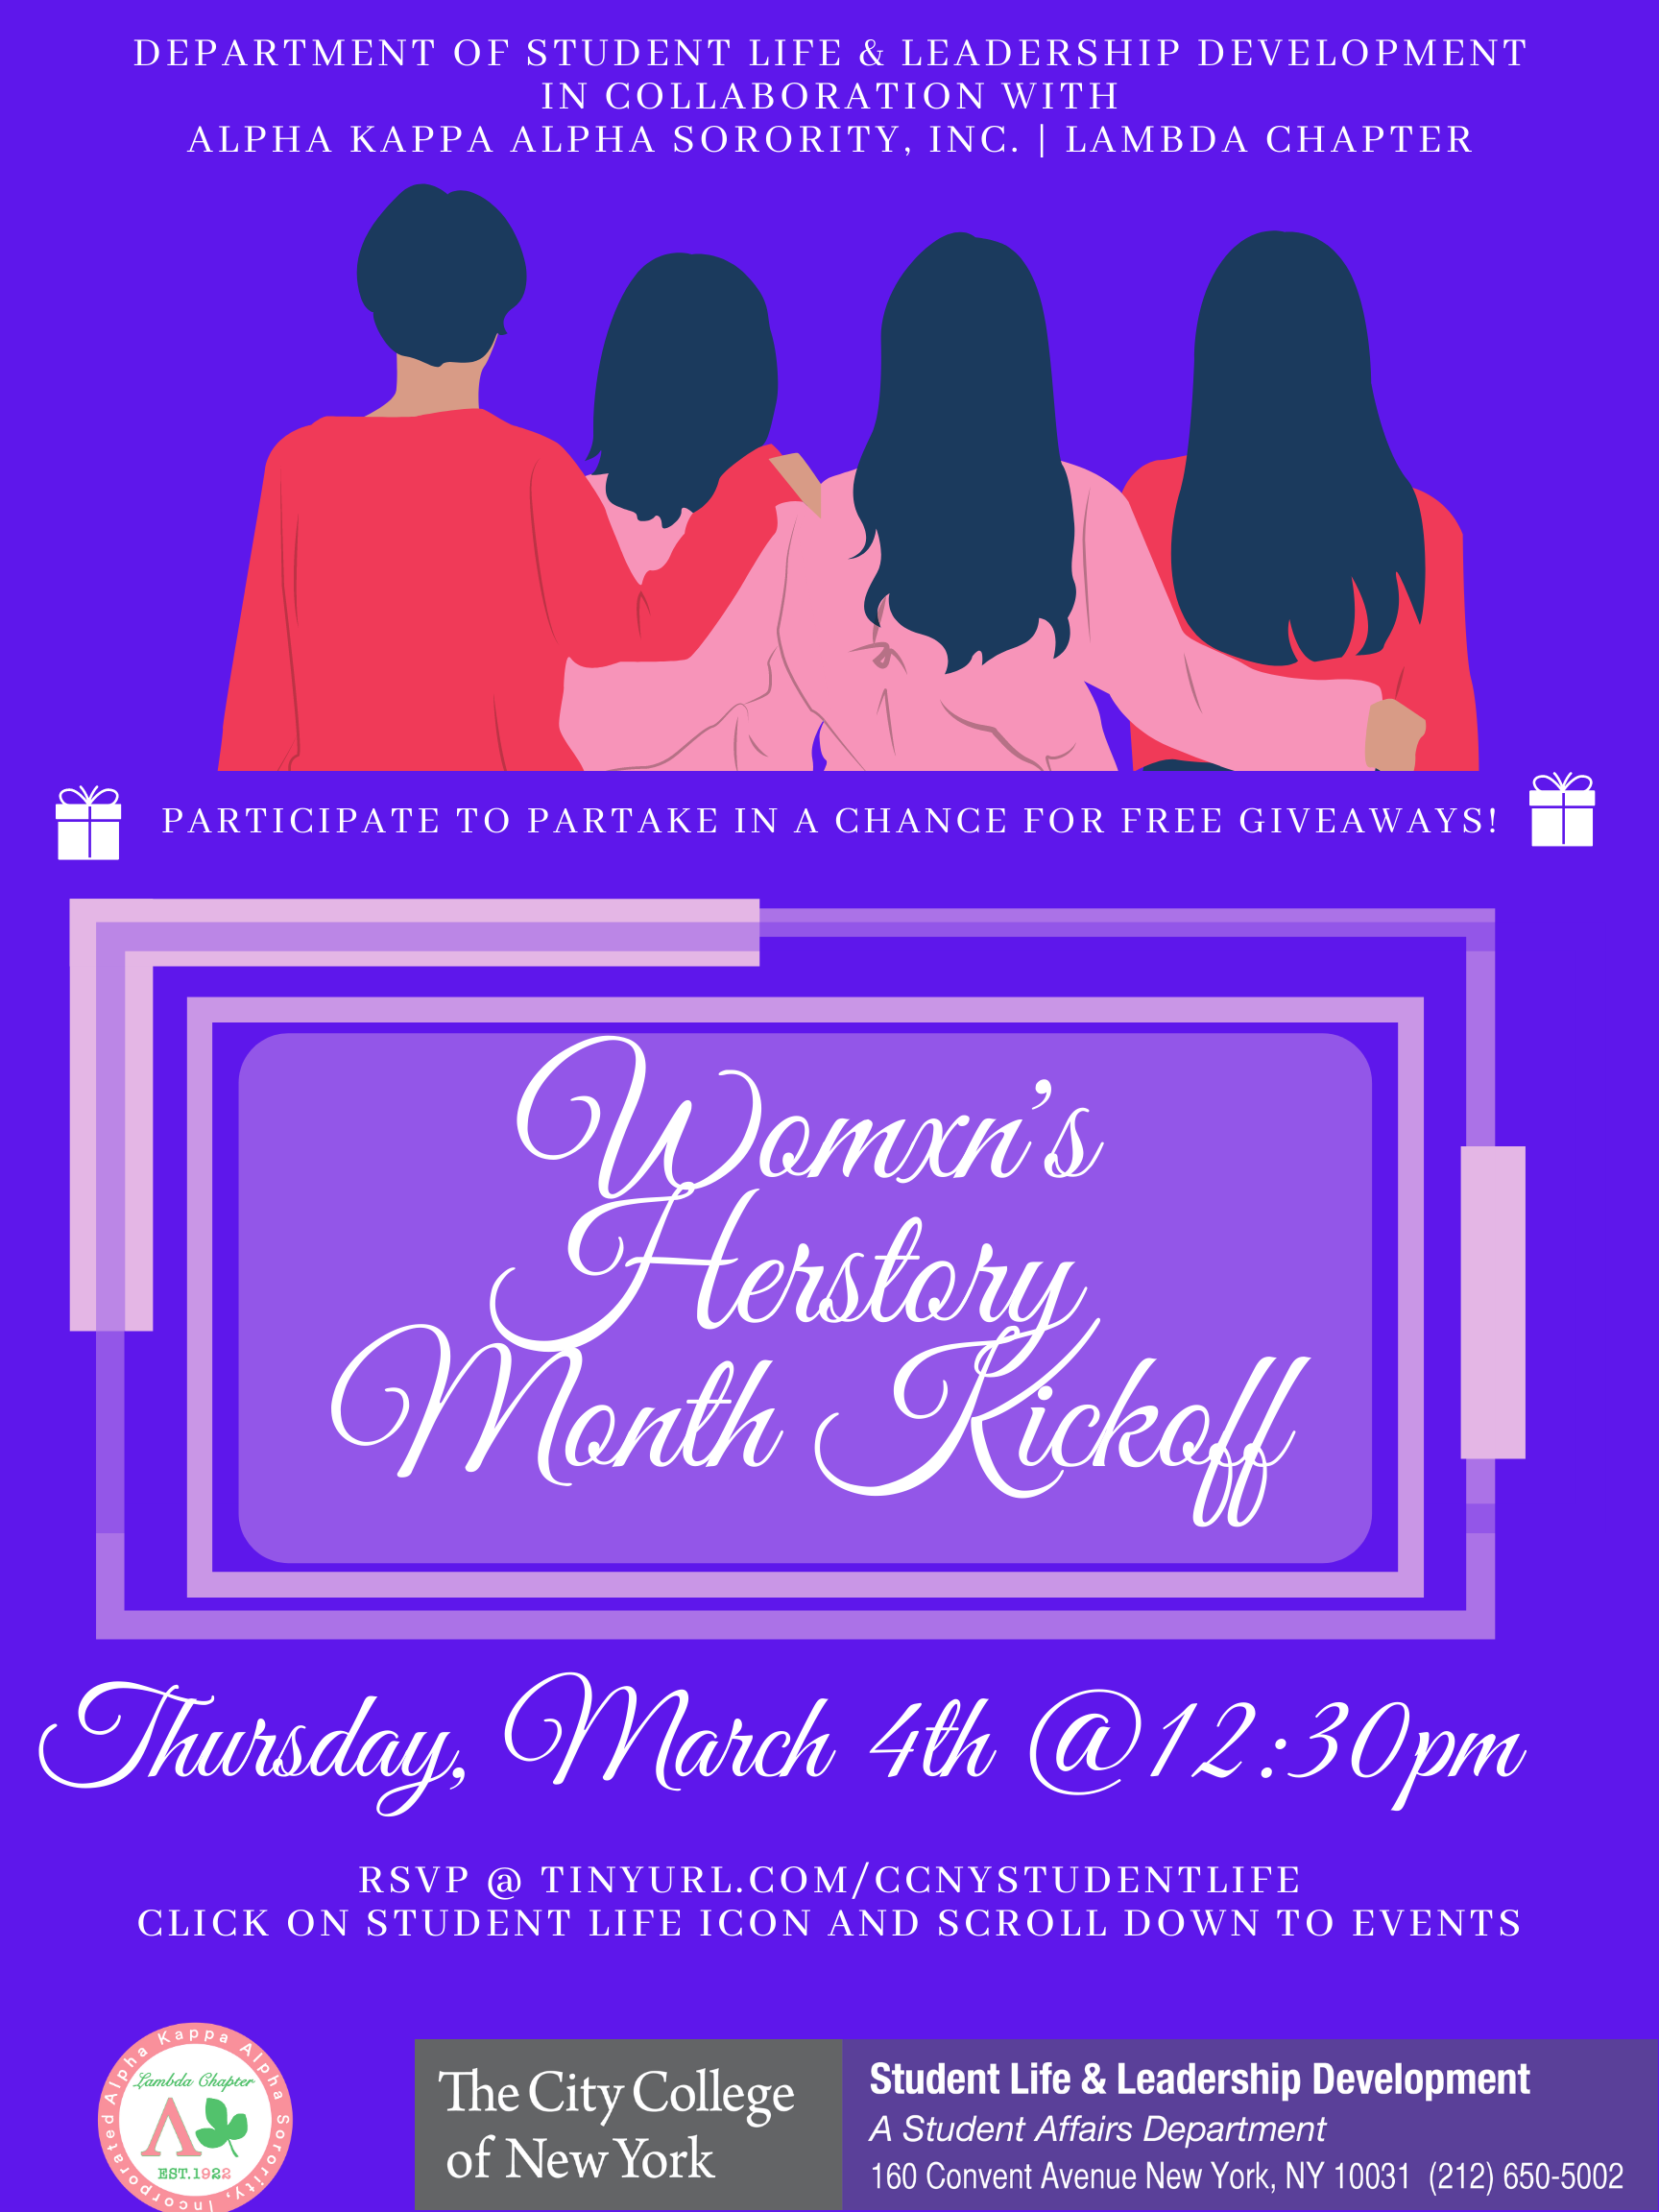 Womxn's Herstory Month Kickoff - Thursday, March 4th